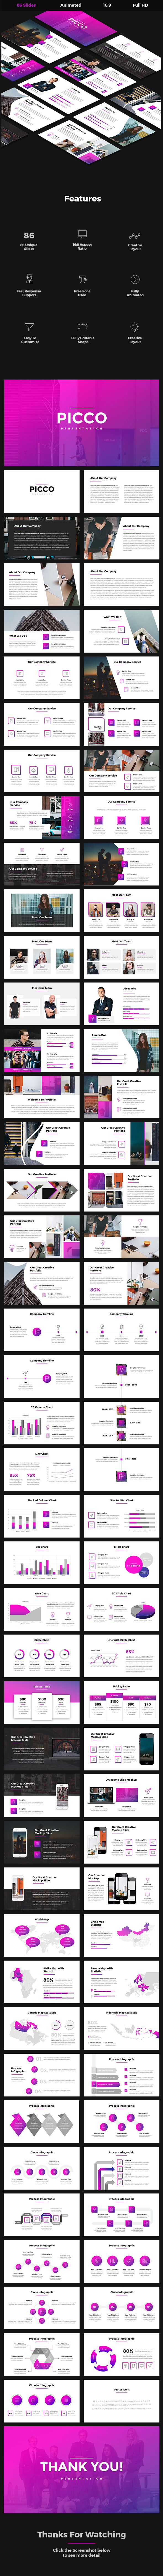 Picco - Creative Keynote Template - Creative Keynote Templates